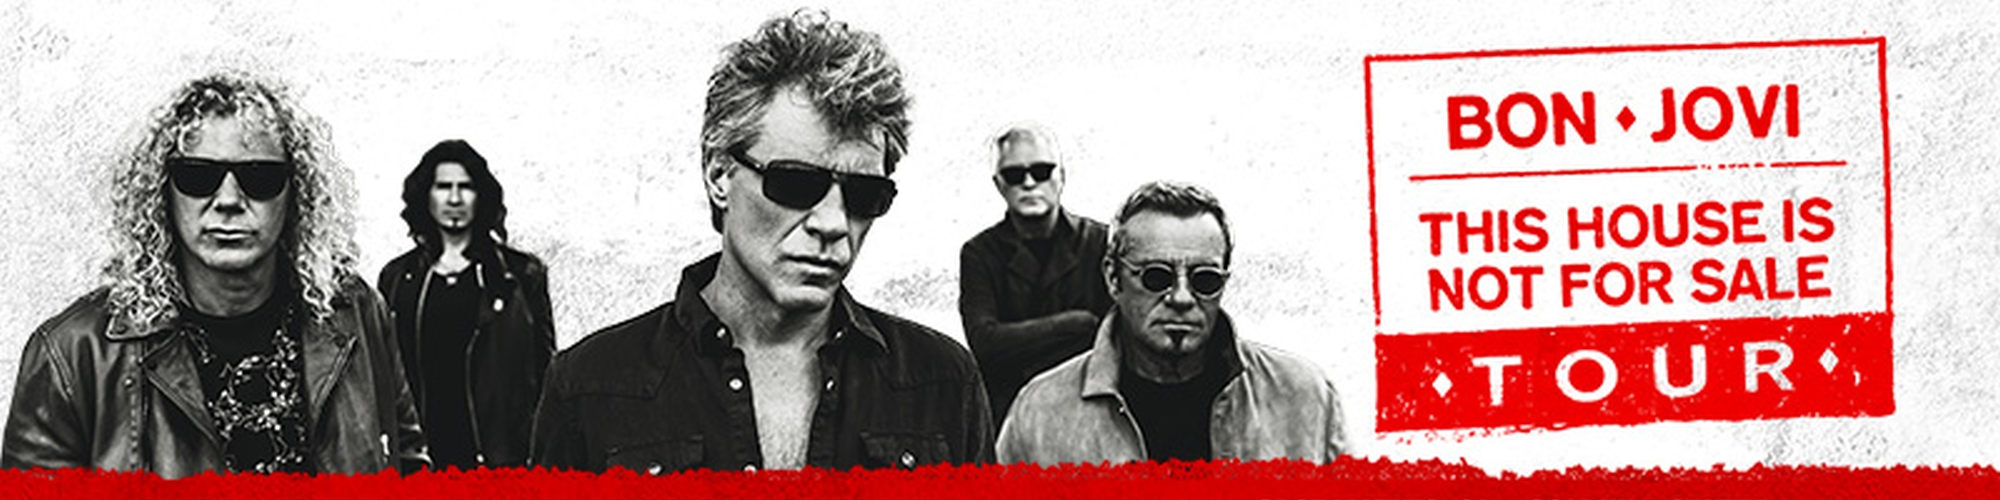 BONJOVI_ADMAT_DATES_800x400NEW